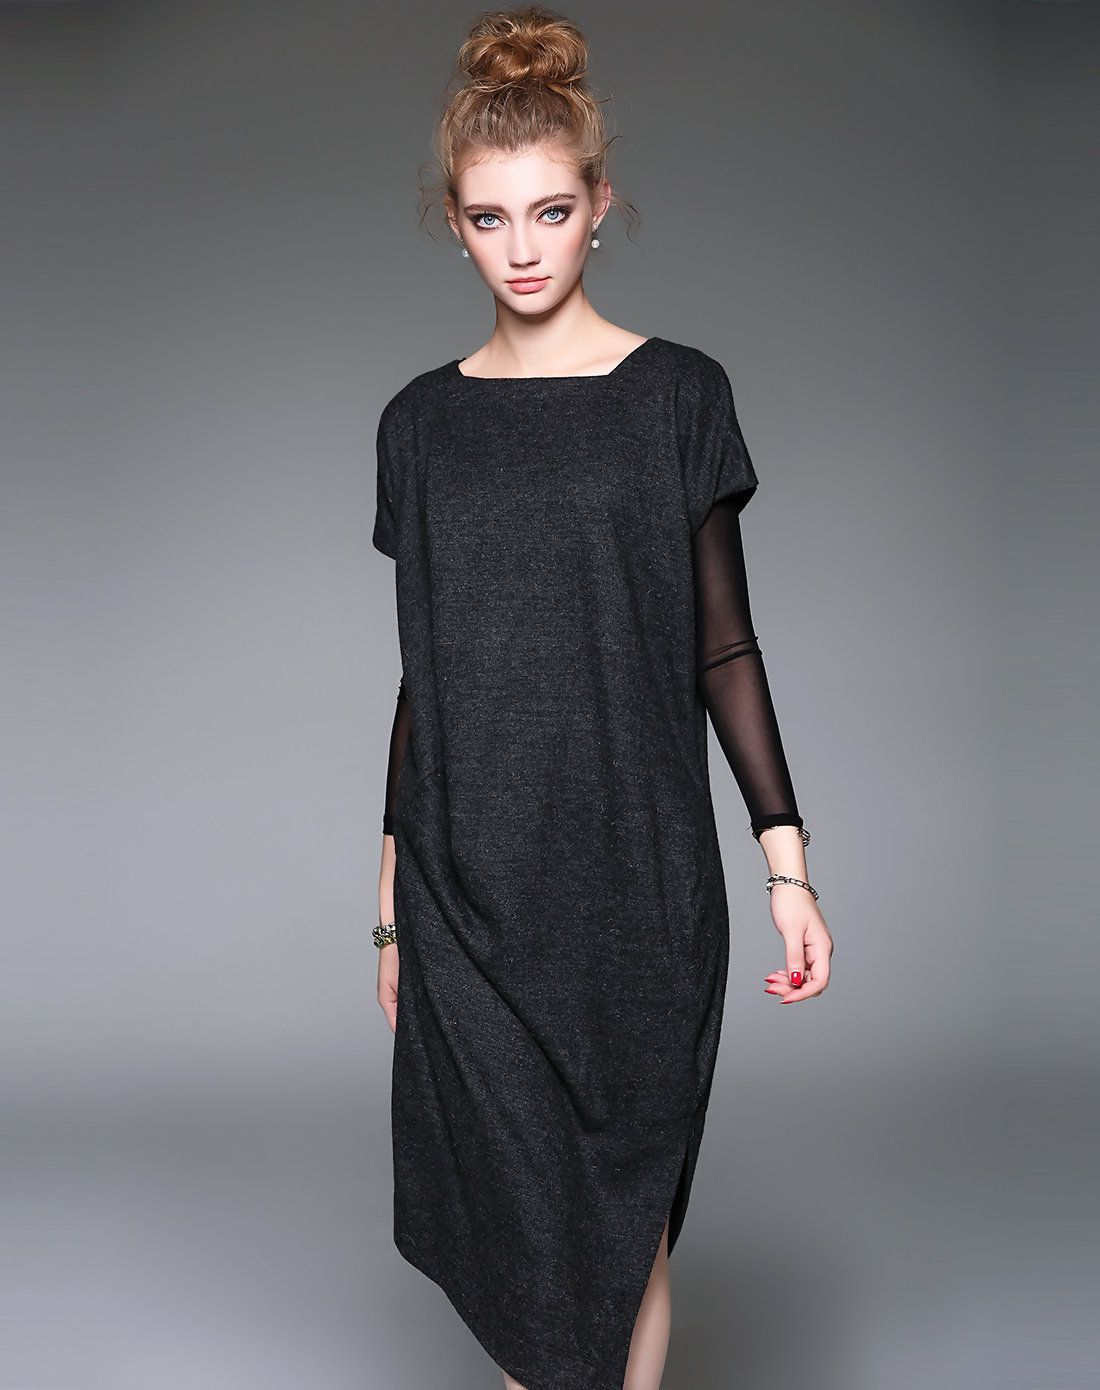 bef4fcc80dd9  AdoreWe  VIPme Shift Dresses - D.Fanni Cap Sleeve Black Woolen Fall Winter  H